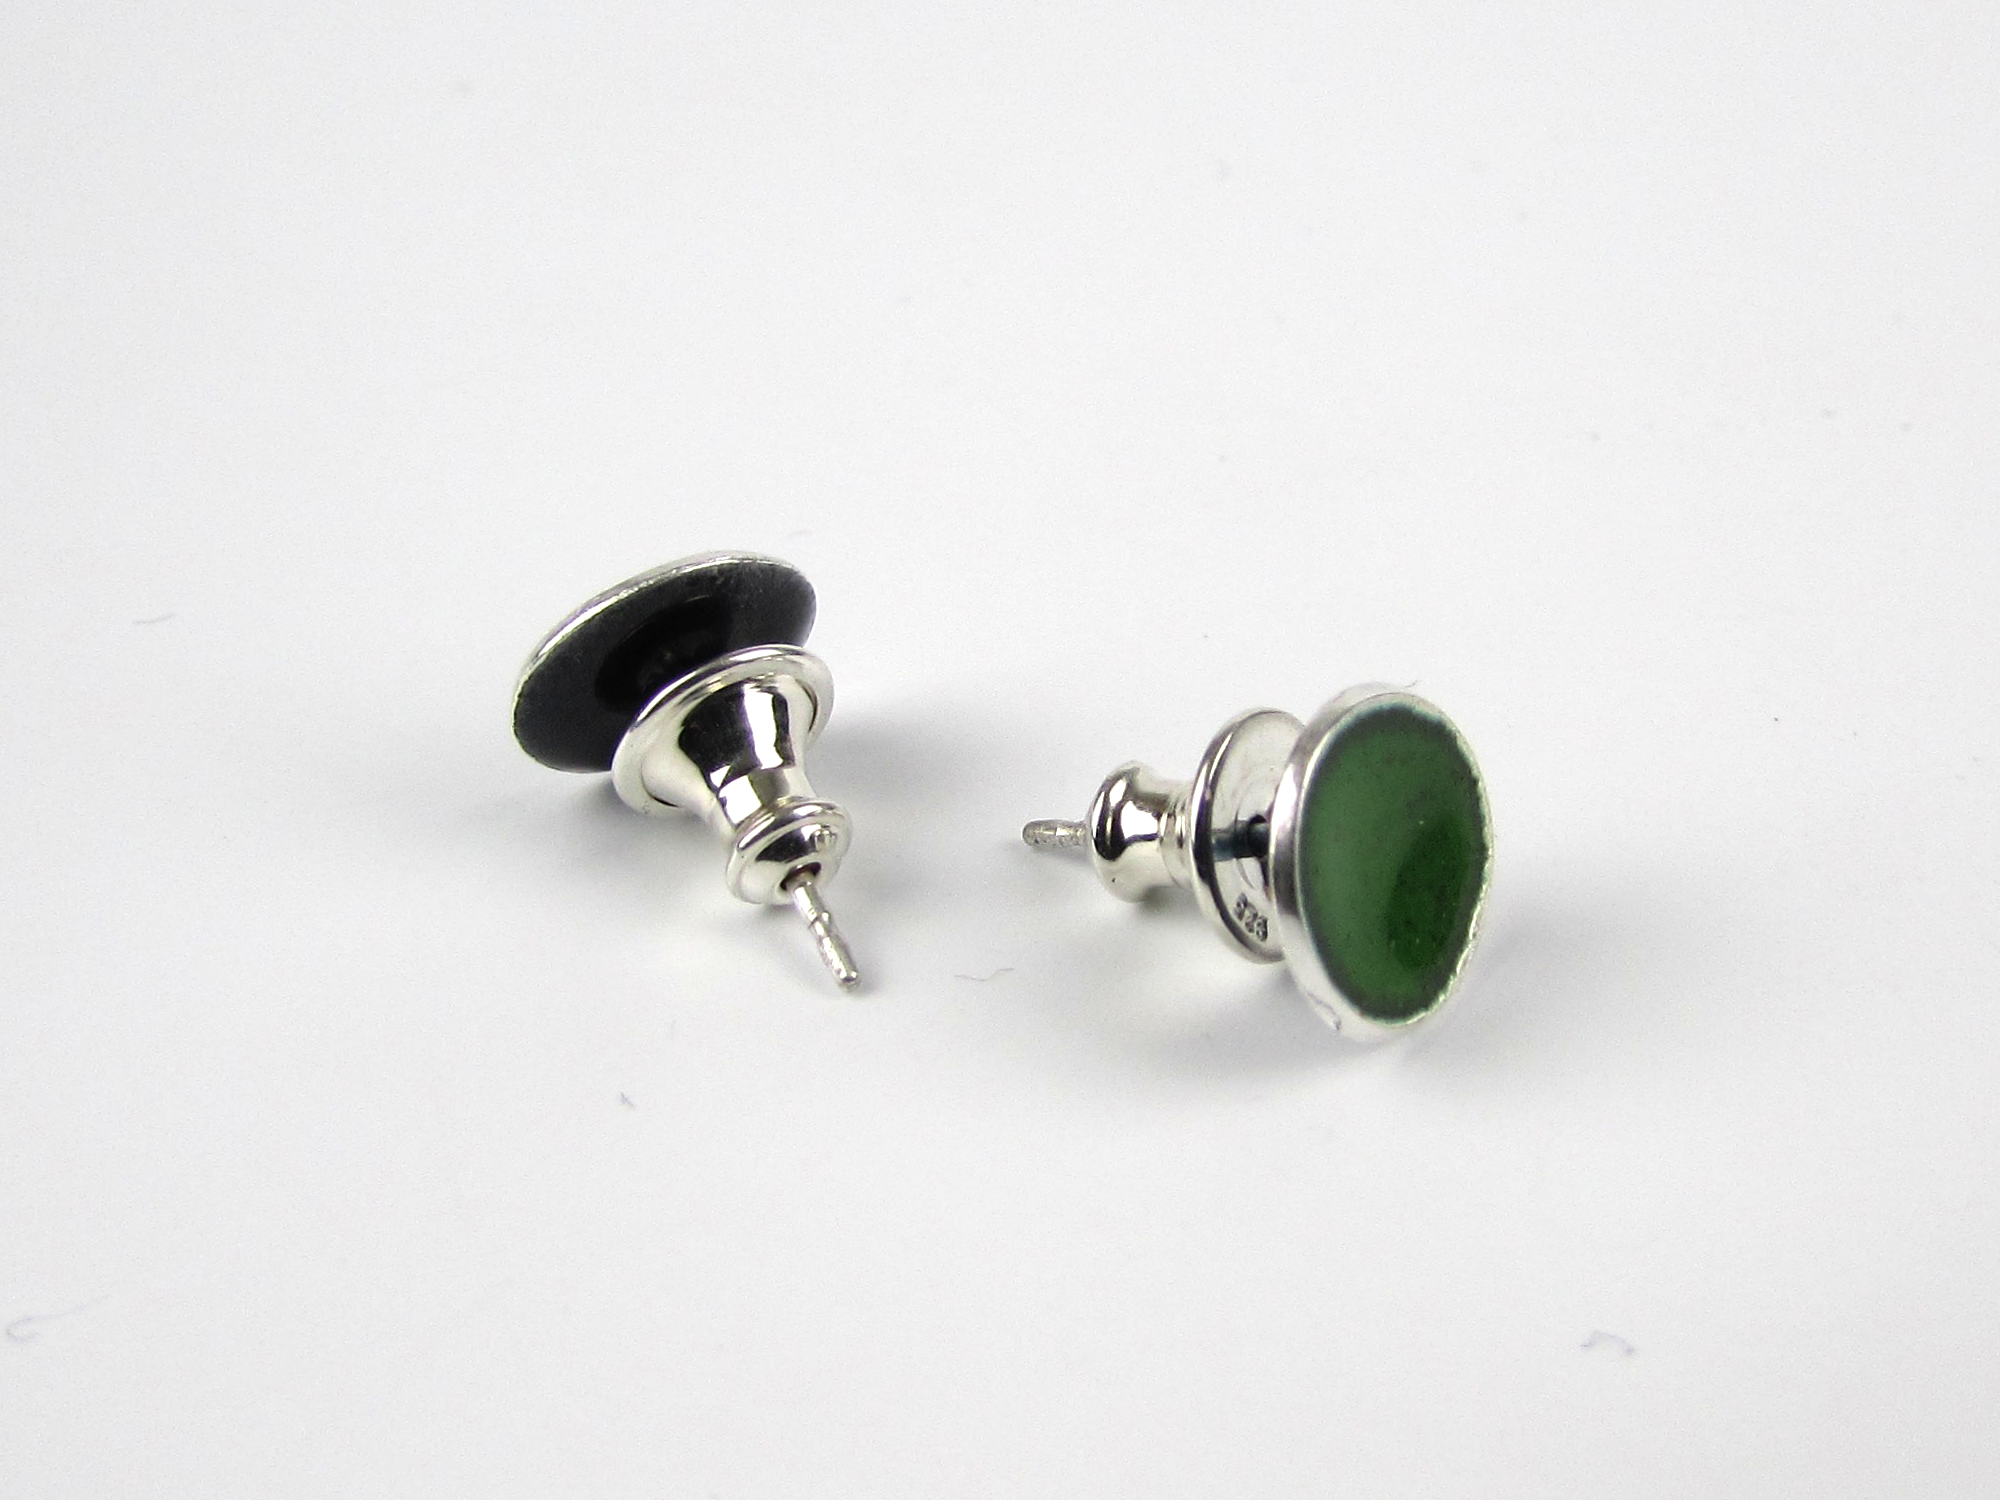 Small Jungle Green Enamel Stud Earrings - Oddbox Studio